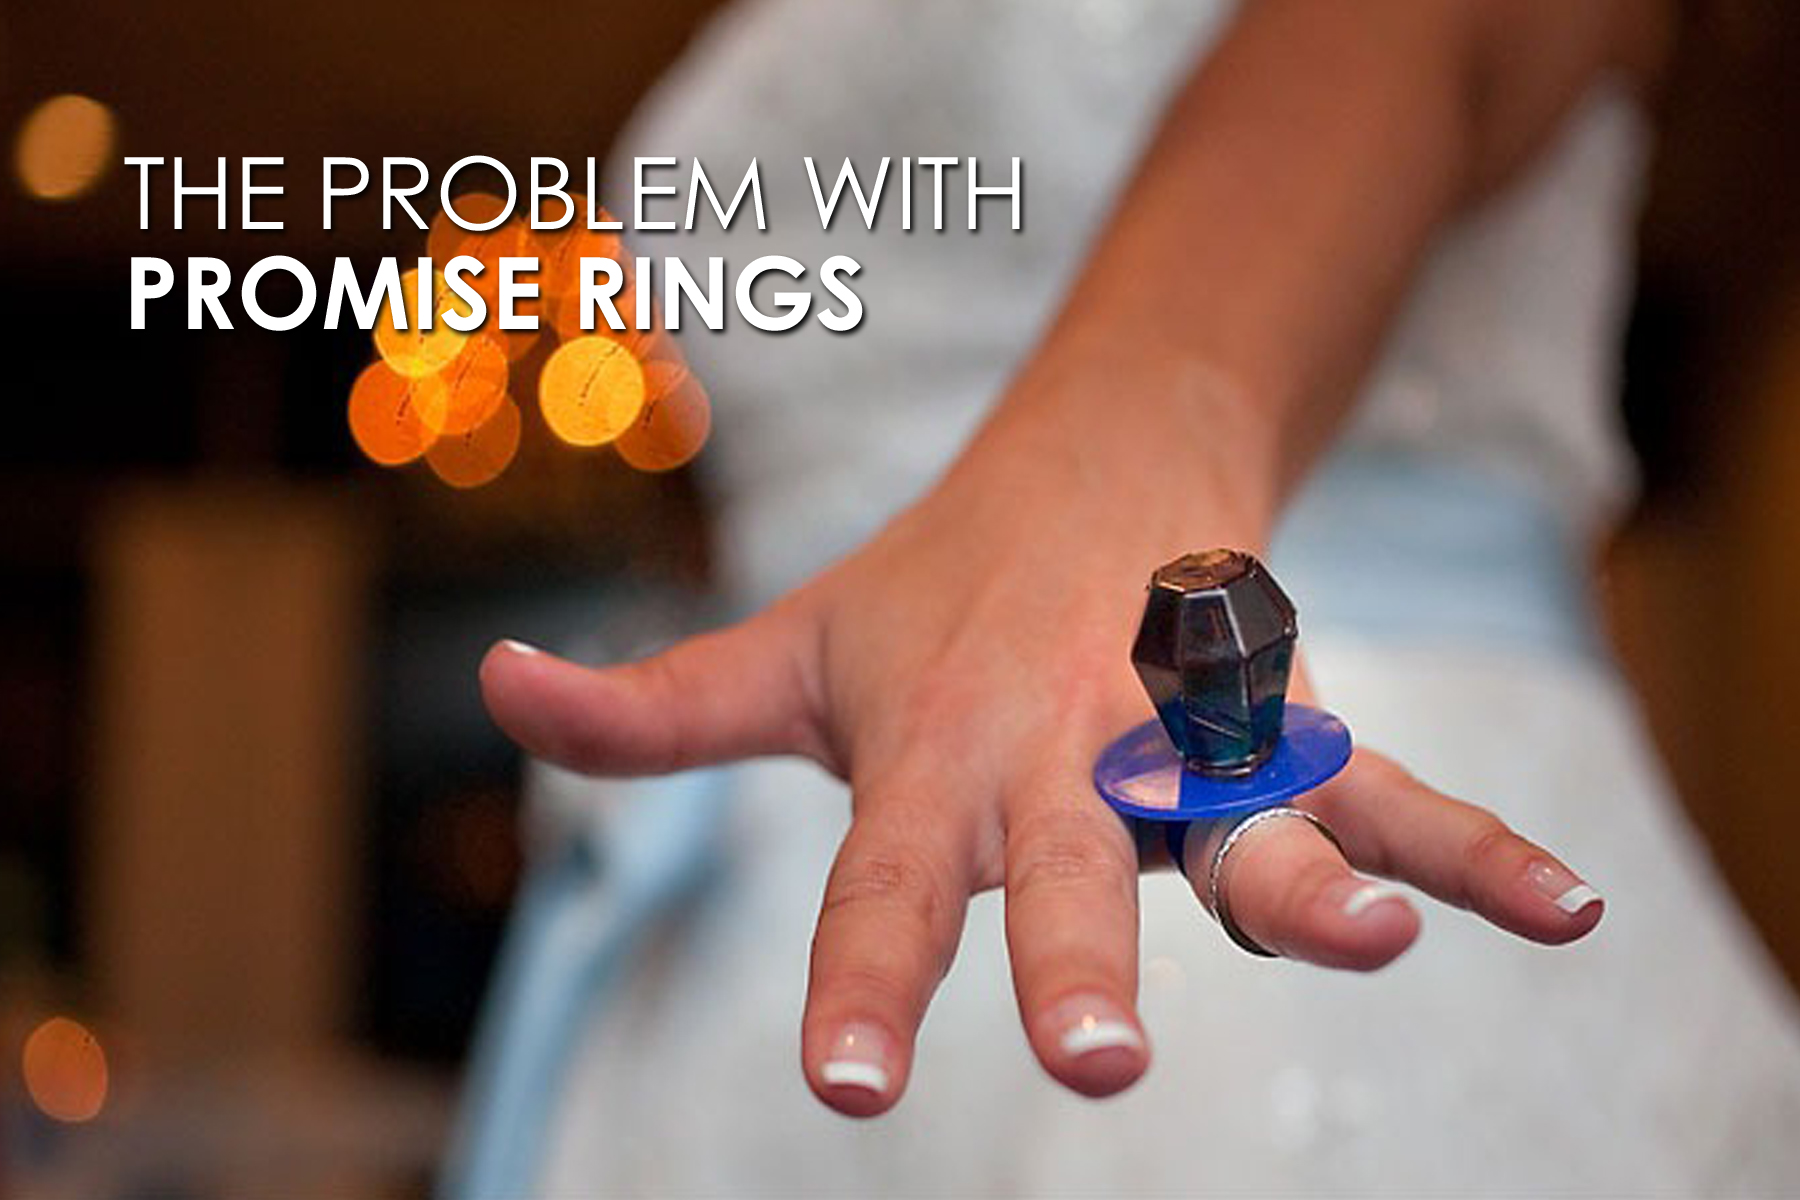 The Problem With Promise Rings John Markum